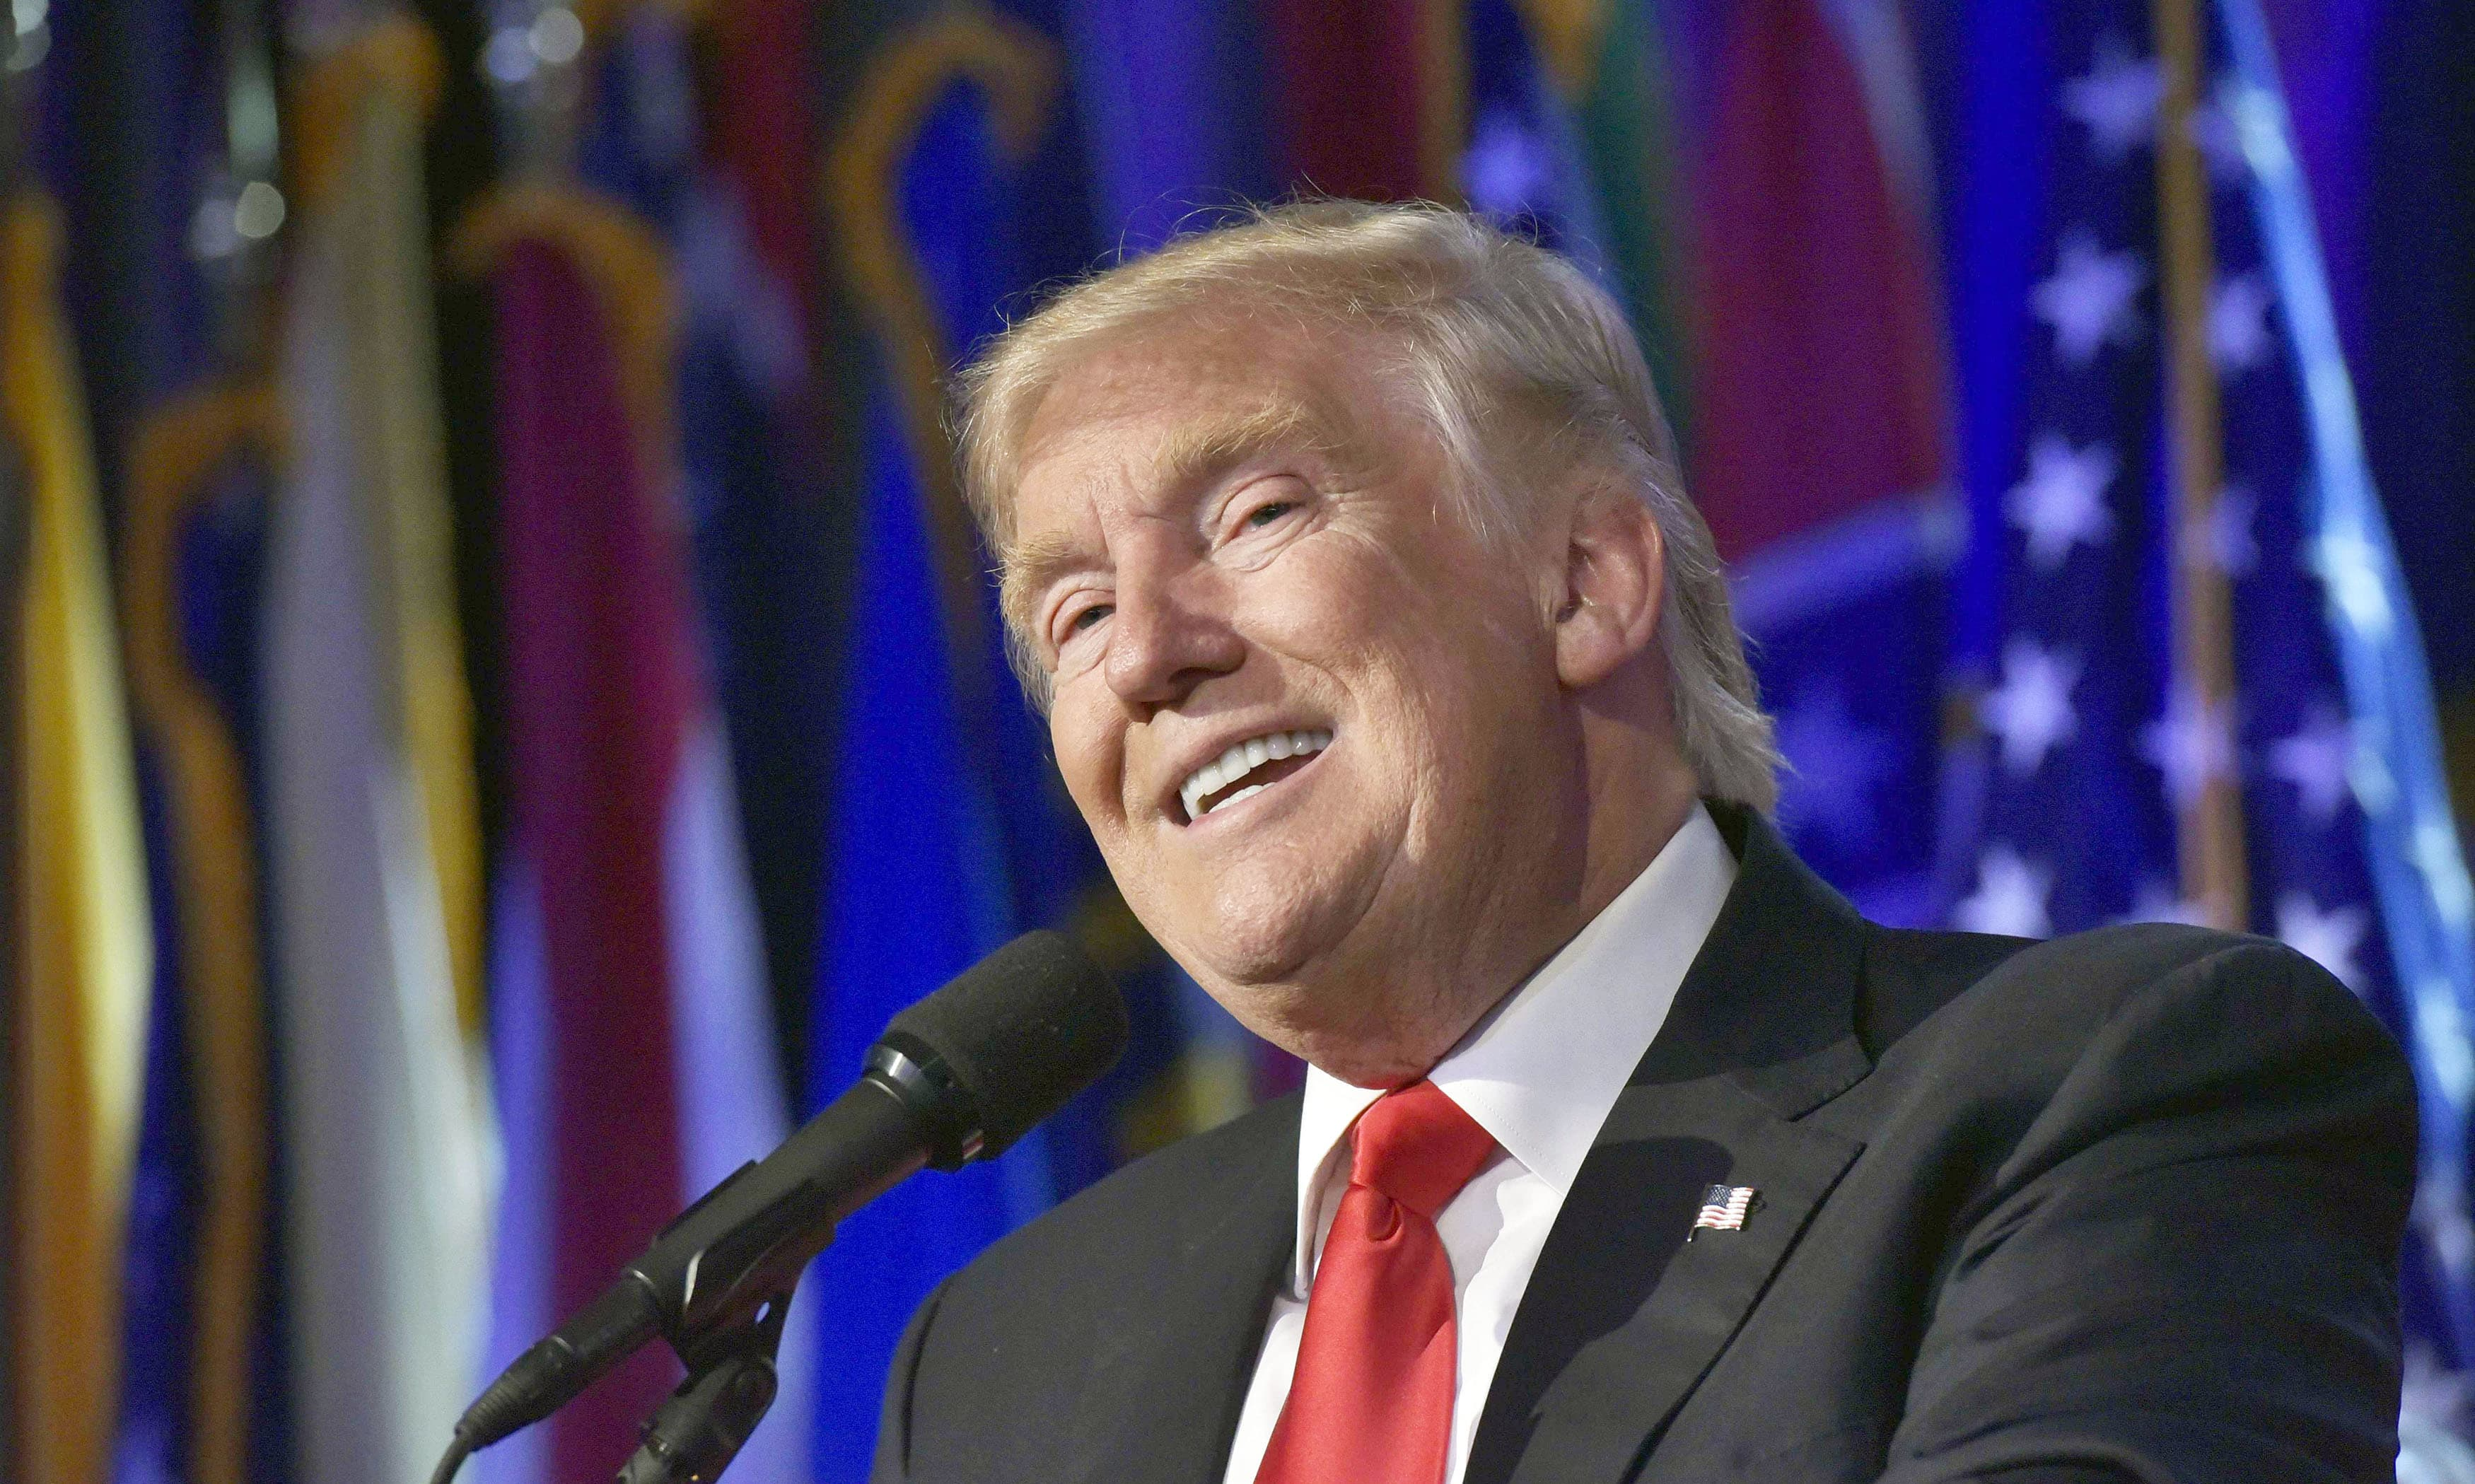 Trump vows to immediately deport up to three million undocumented immigrants